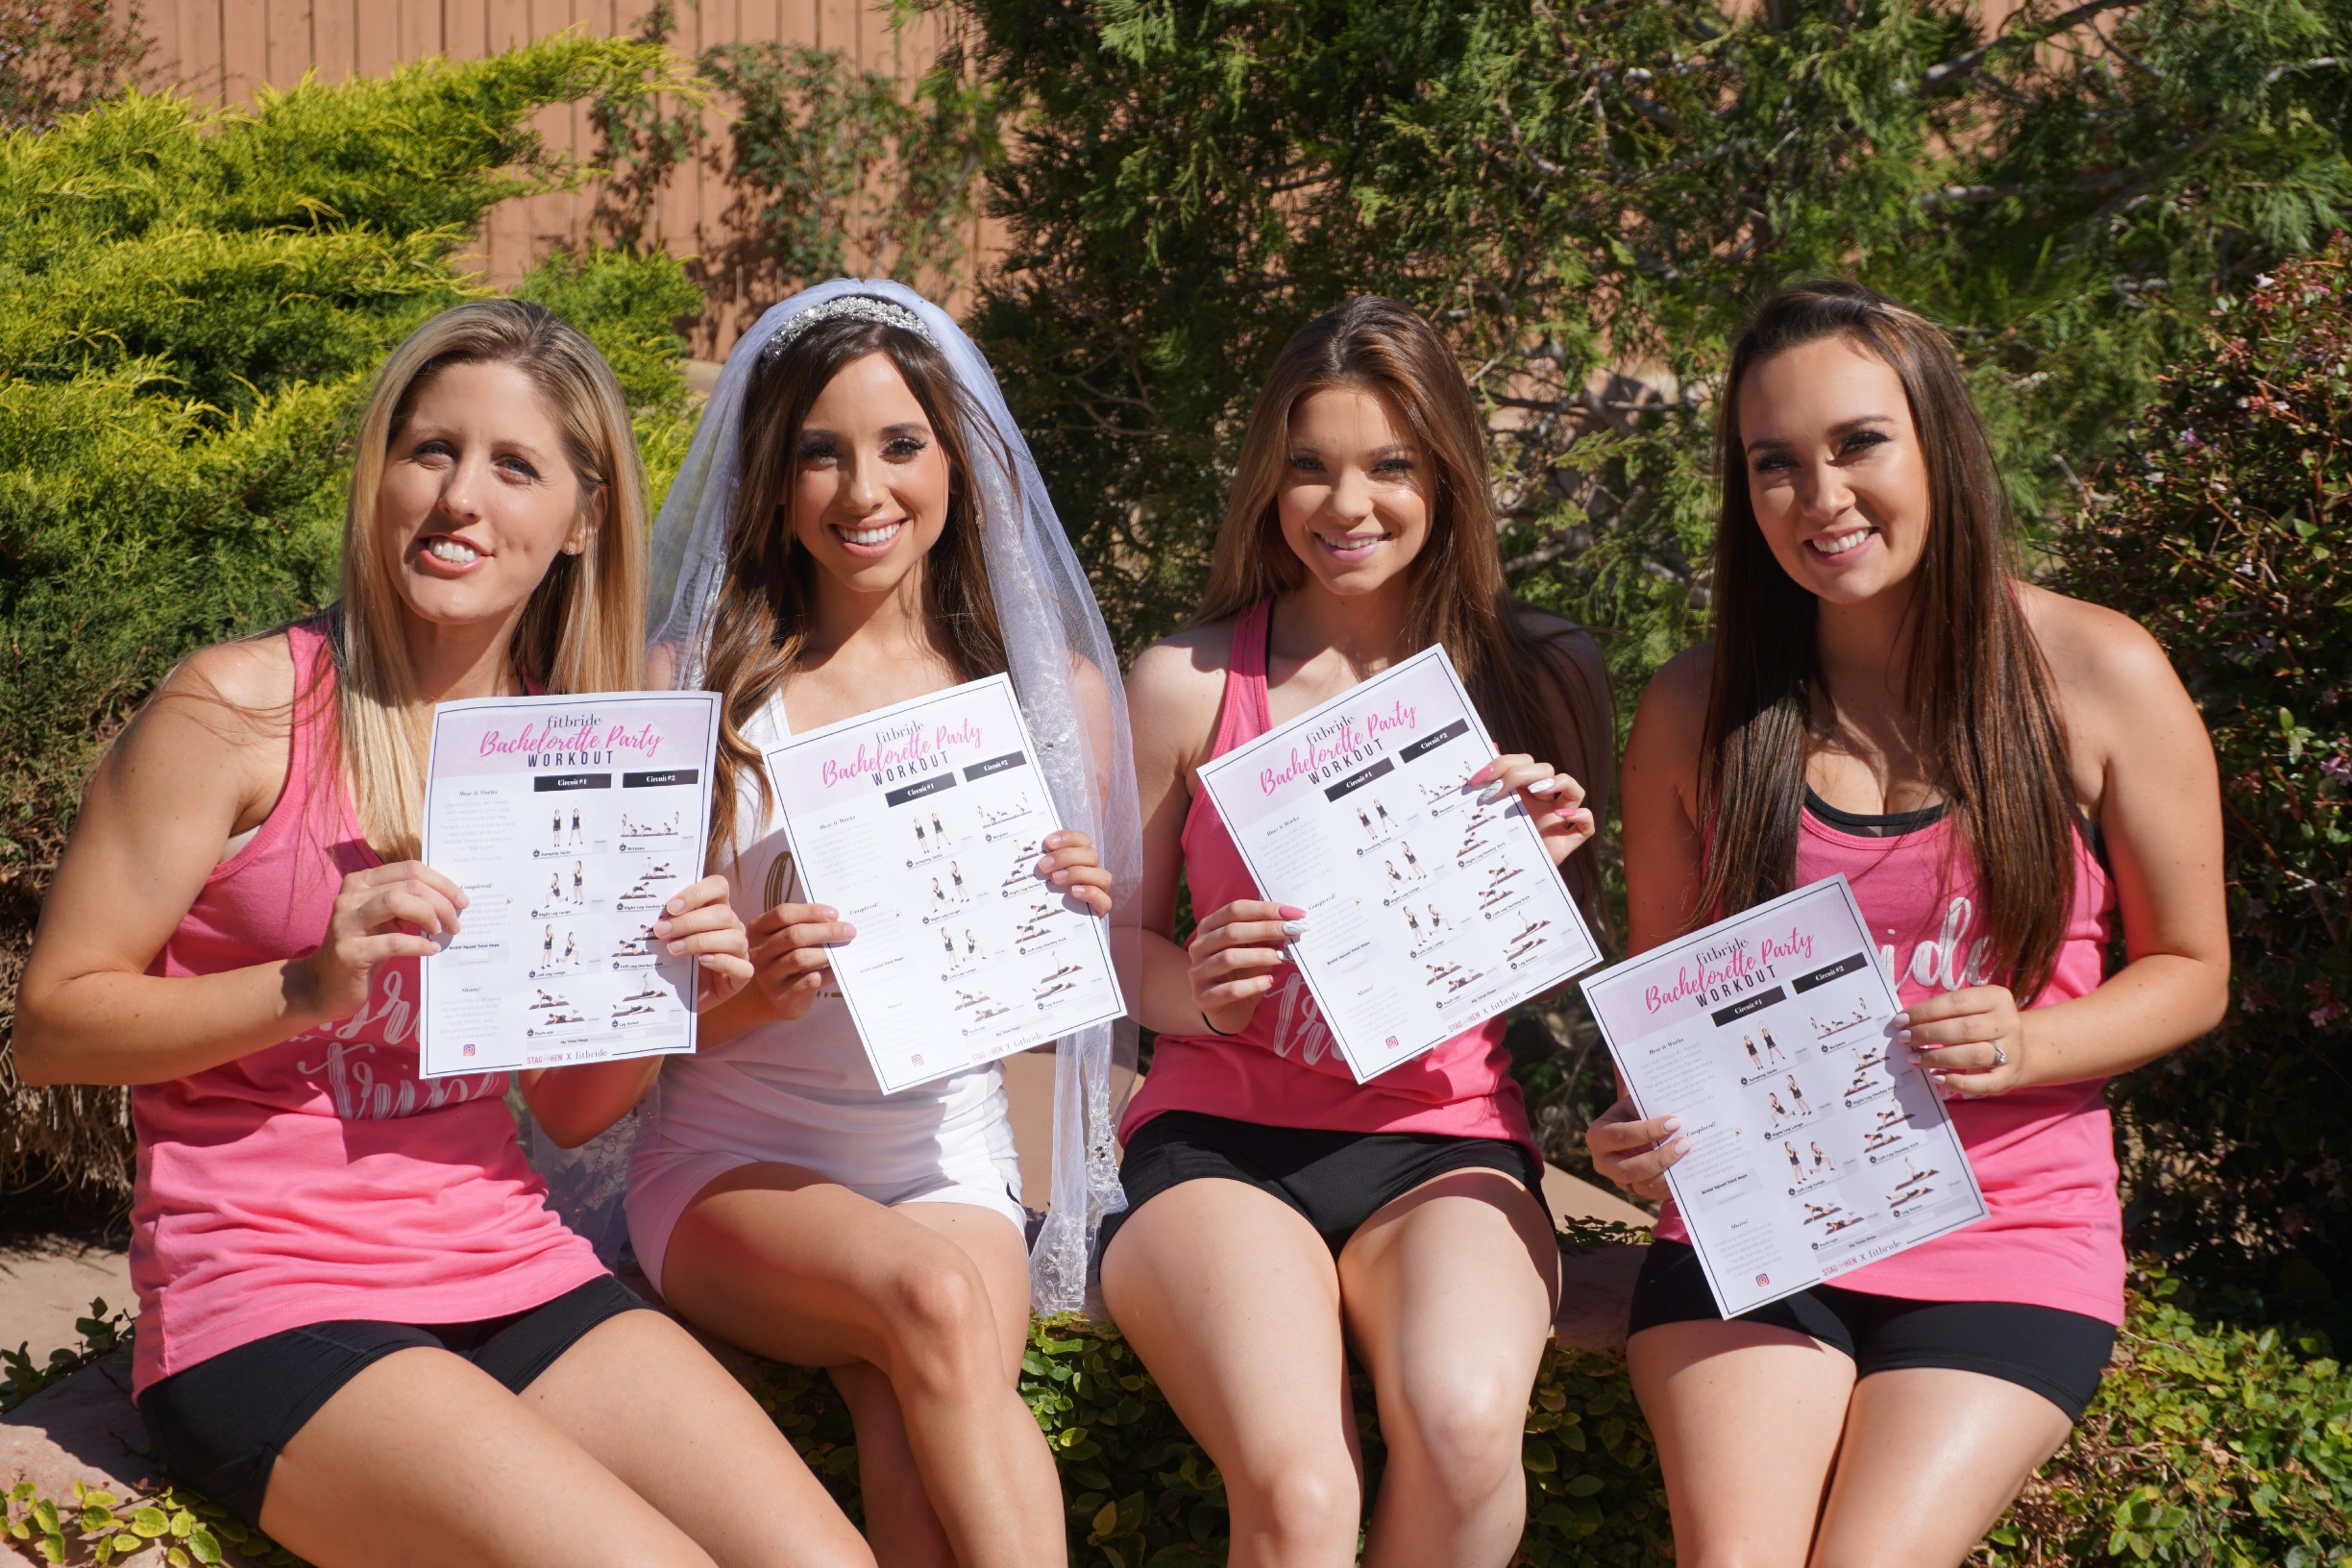 Photo of 4 women holding the Bachelorette Party workout program